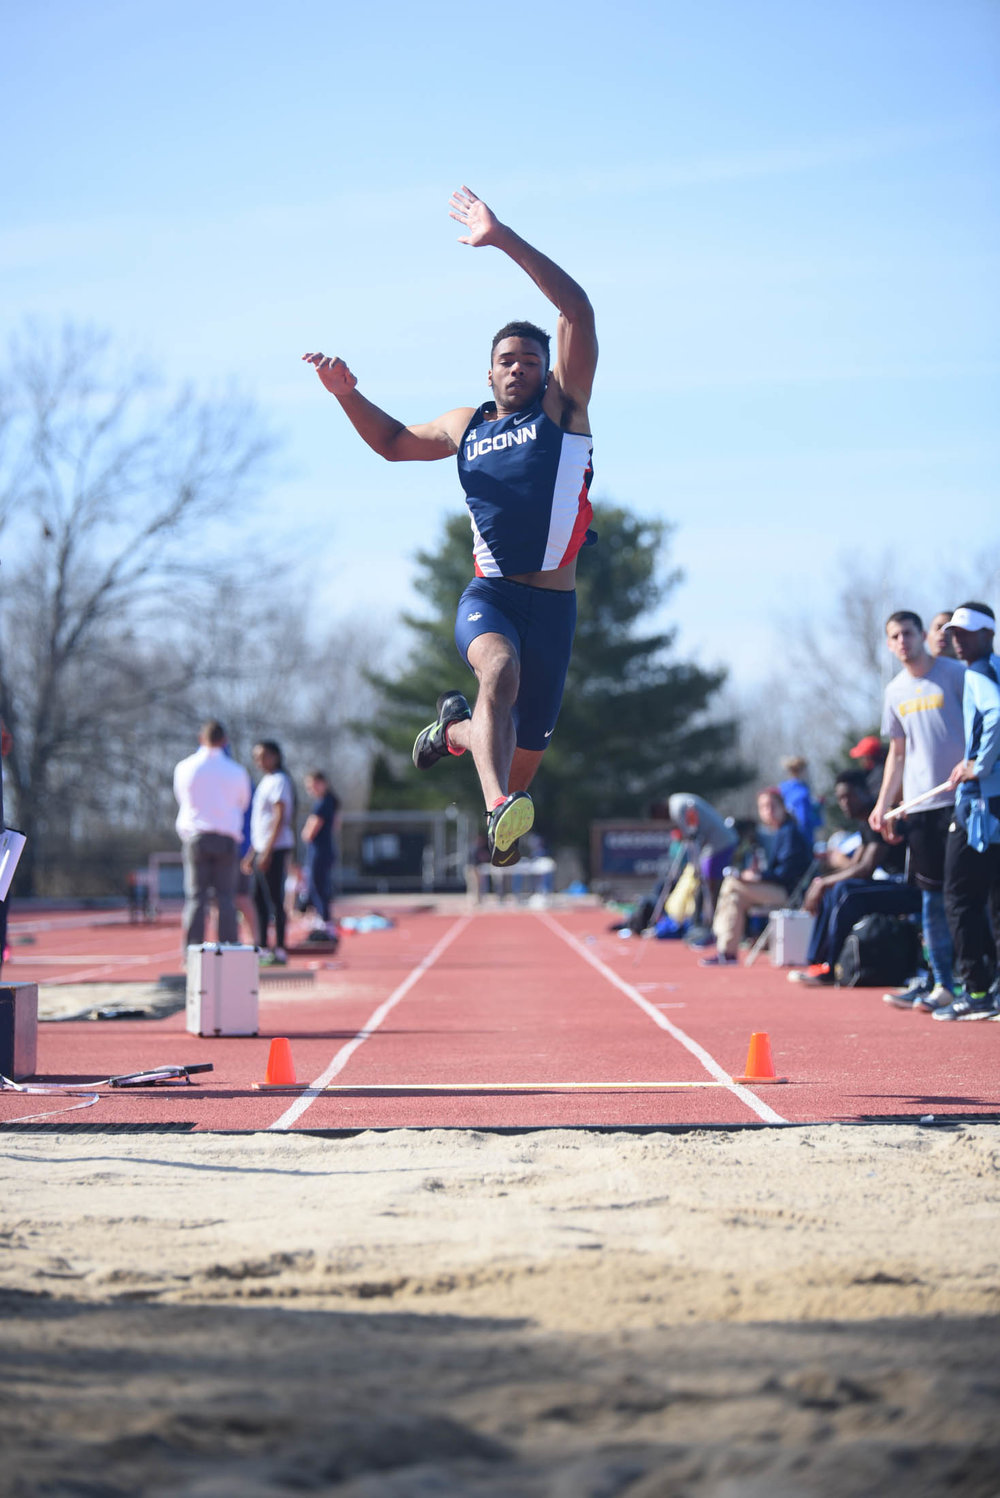 The UConn men's track and field team is preparing for the Columbia East-West Challenge following a a disappointing second-place finish in a meet last week. (Zhelun Lang/The Daily Campus)